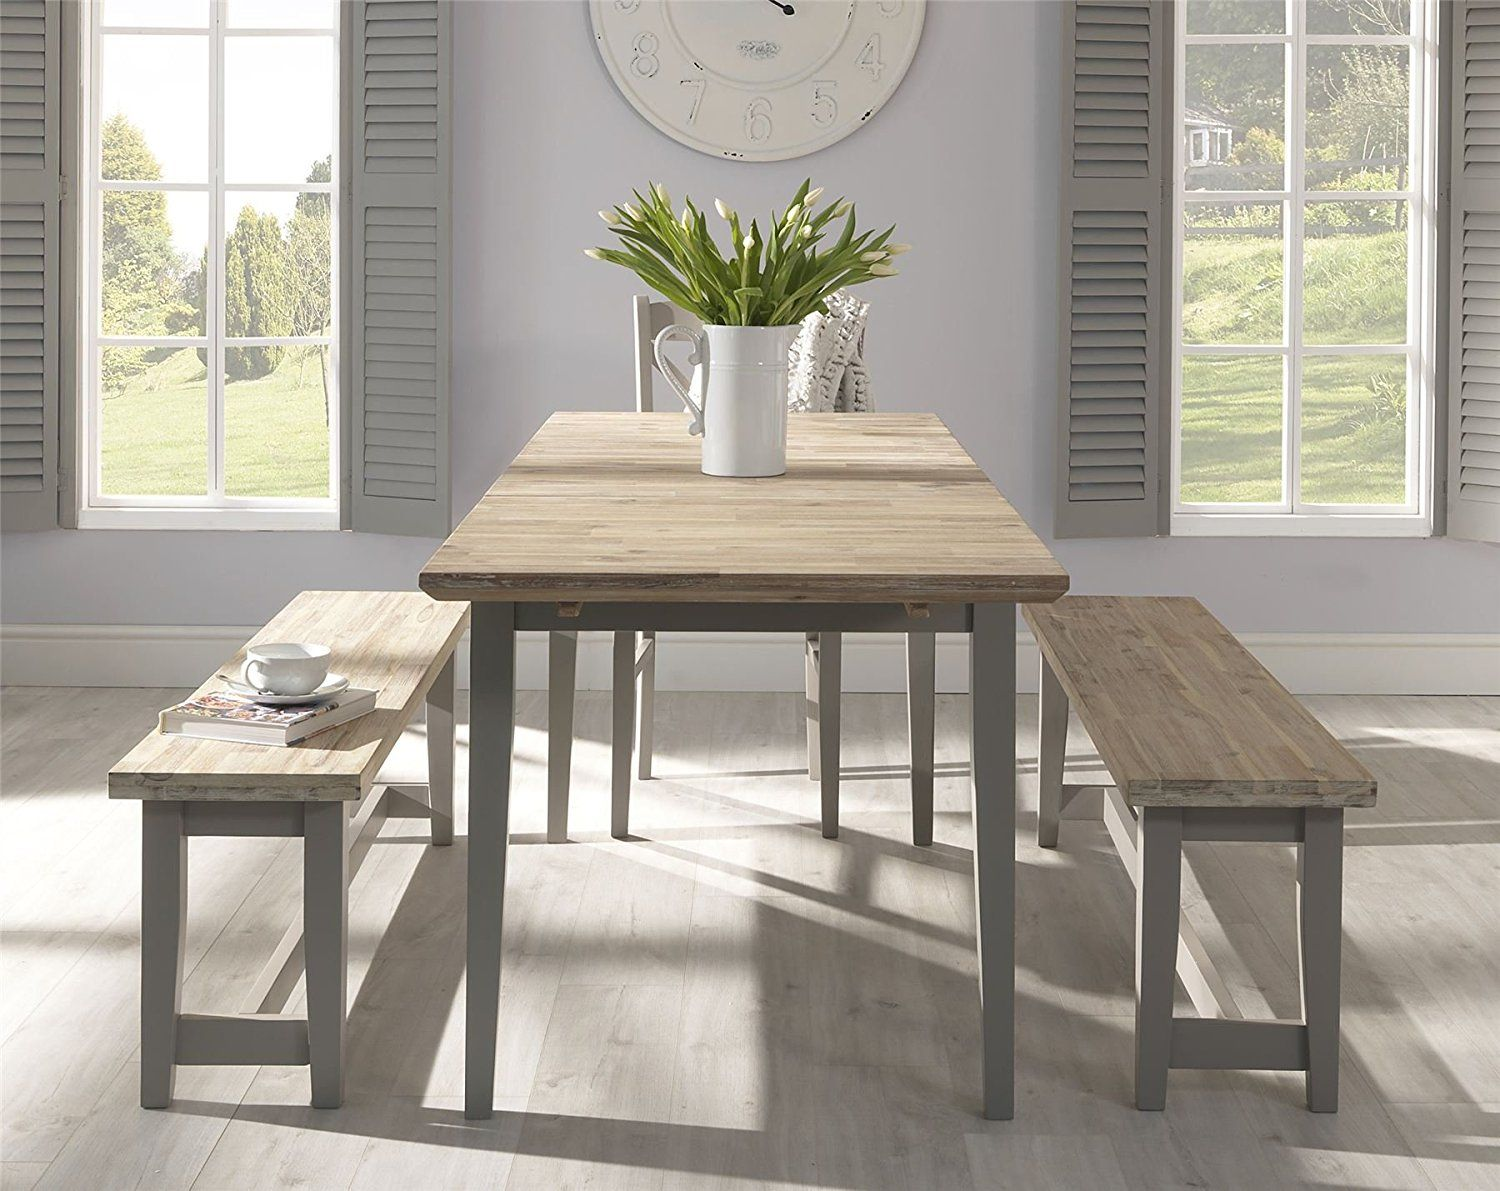 Best Dove Grey Table Bench With Acacia Seat Quality Wooden 400 x 300